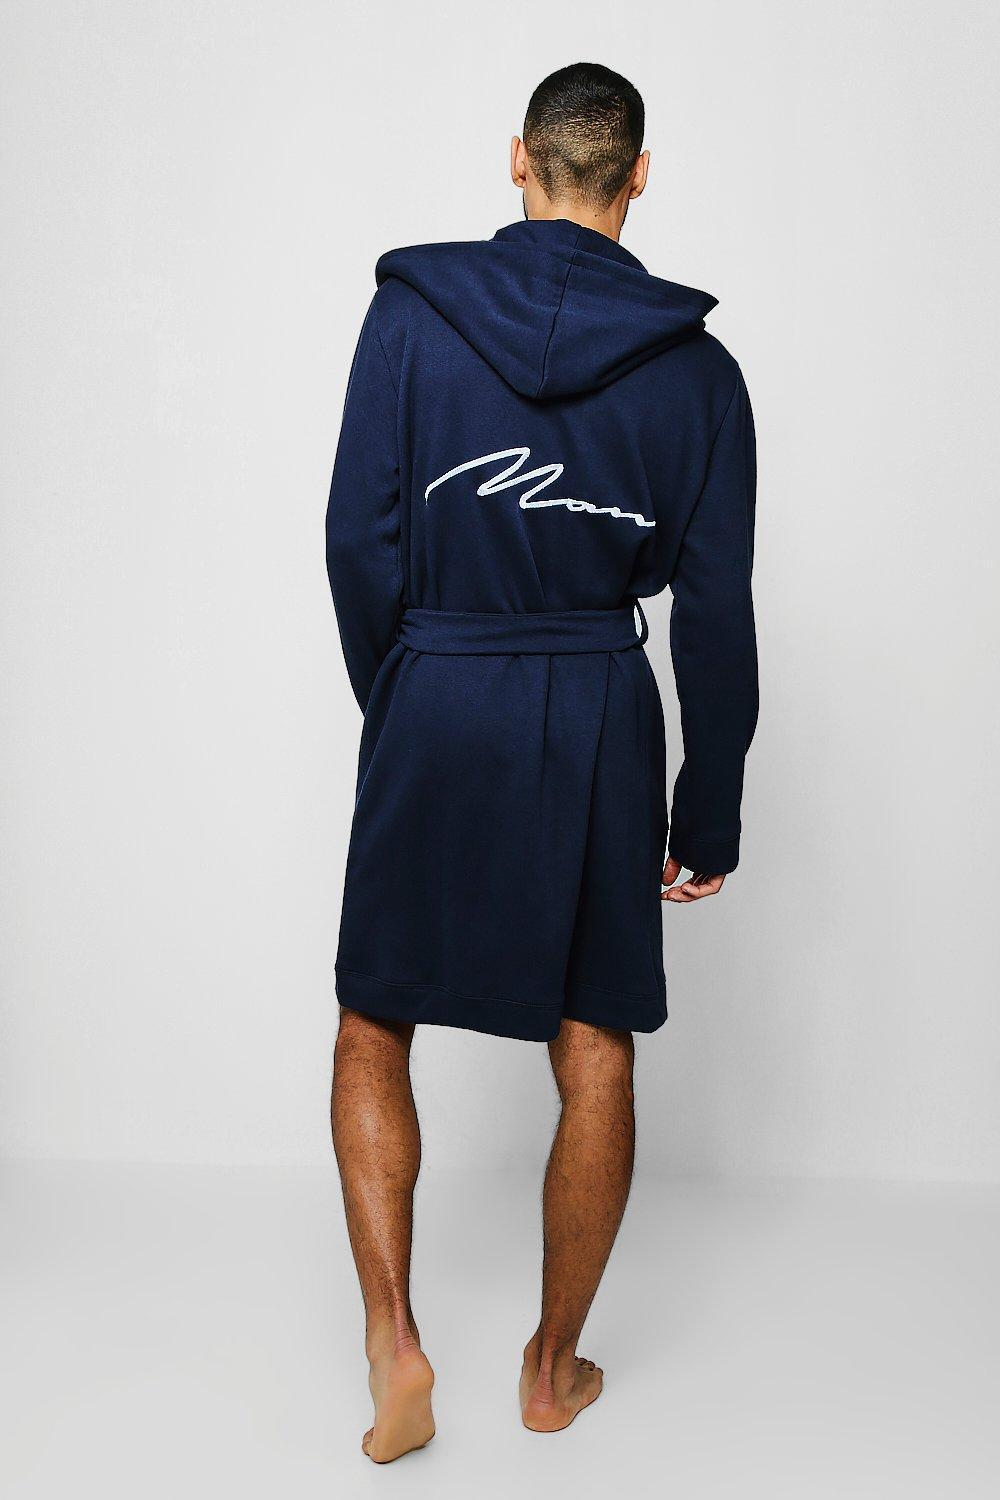 42aa3480db Boohoo Jersey Fleece Hooded Man Embroidered Robe in Blue for Men - Lyst